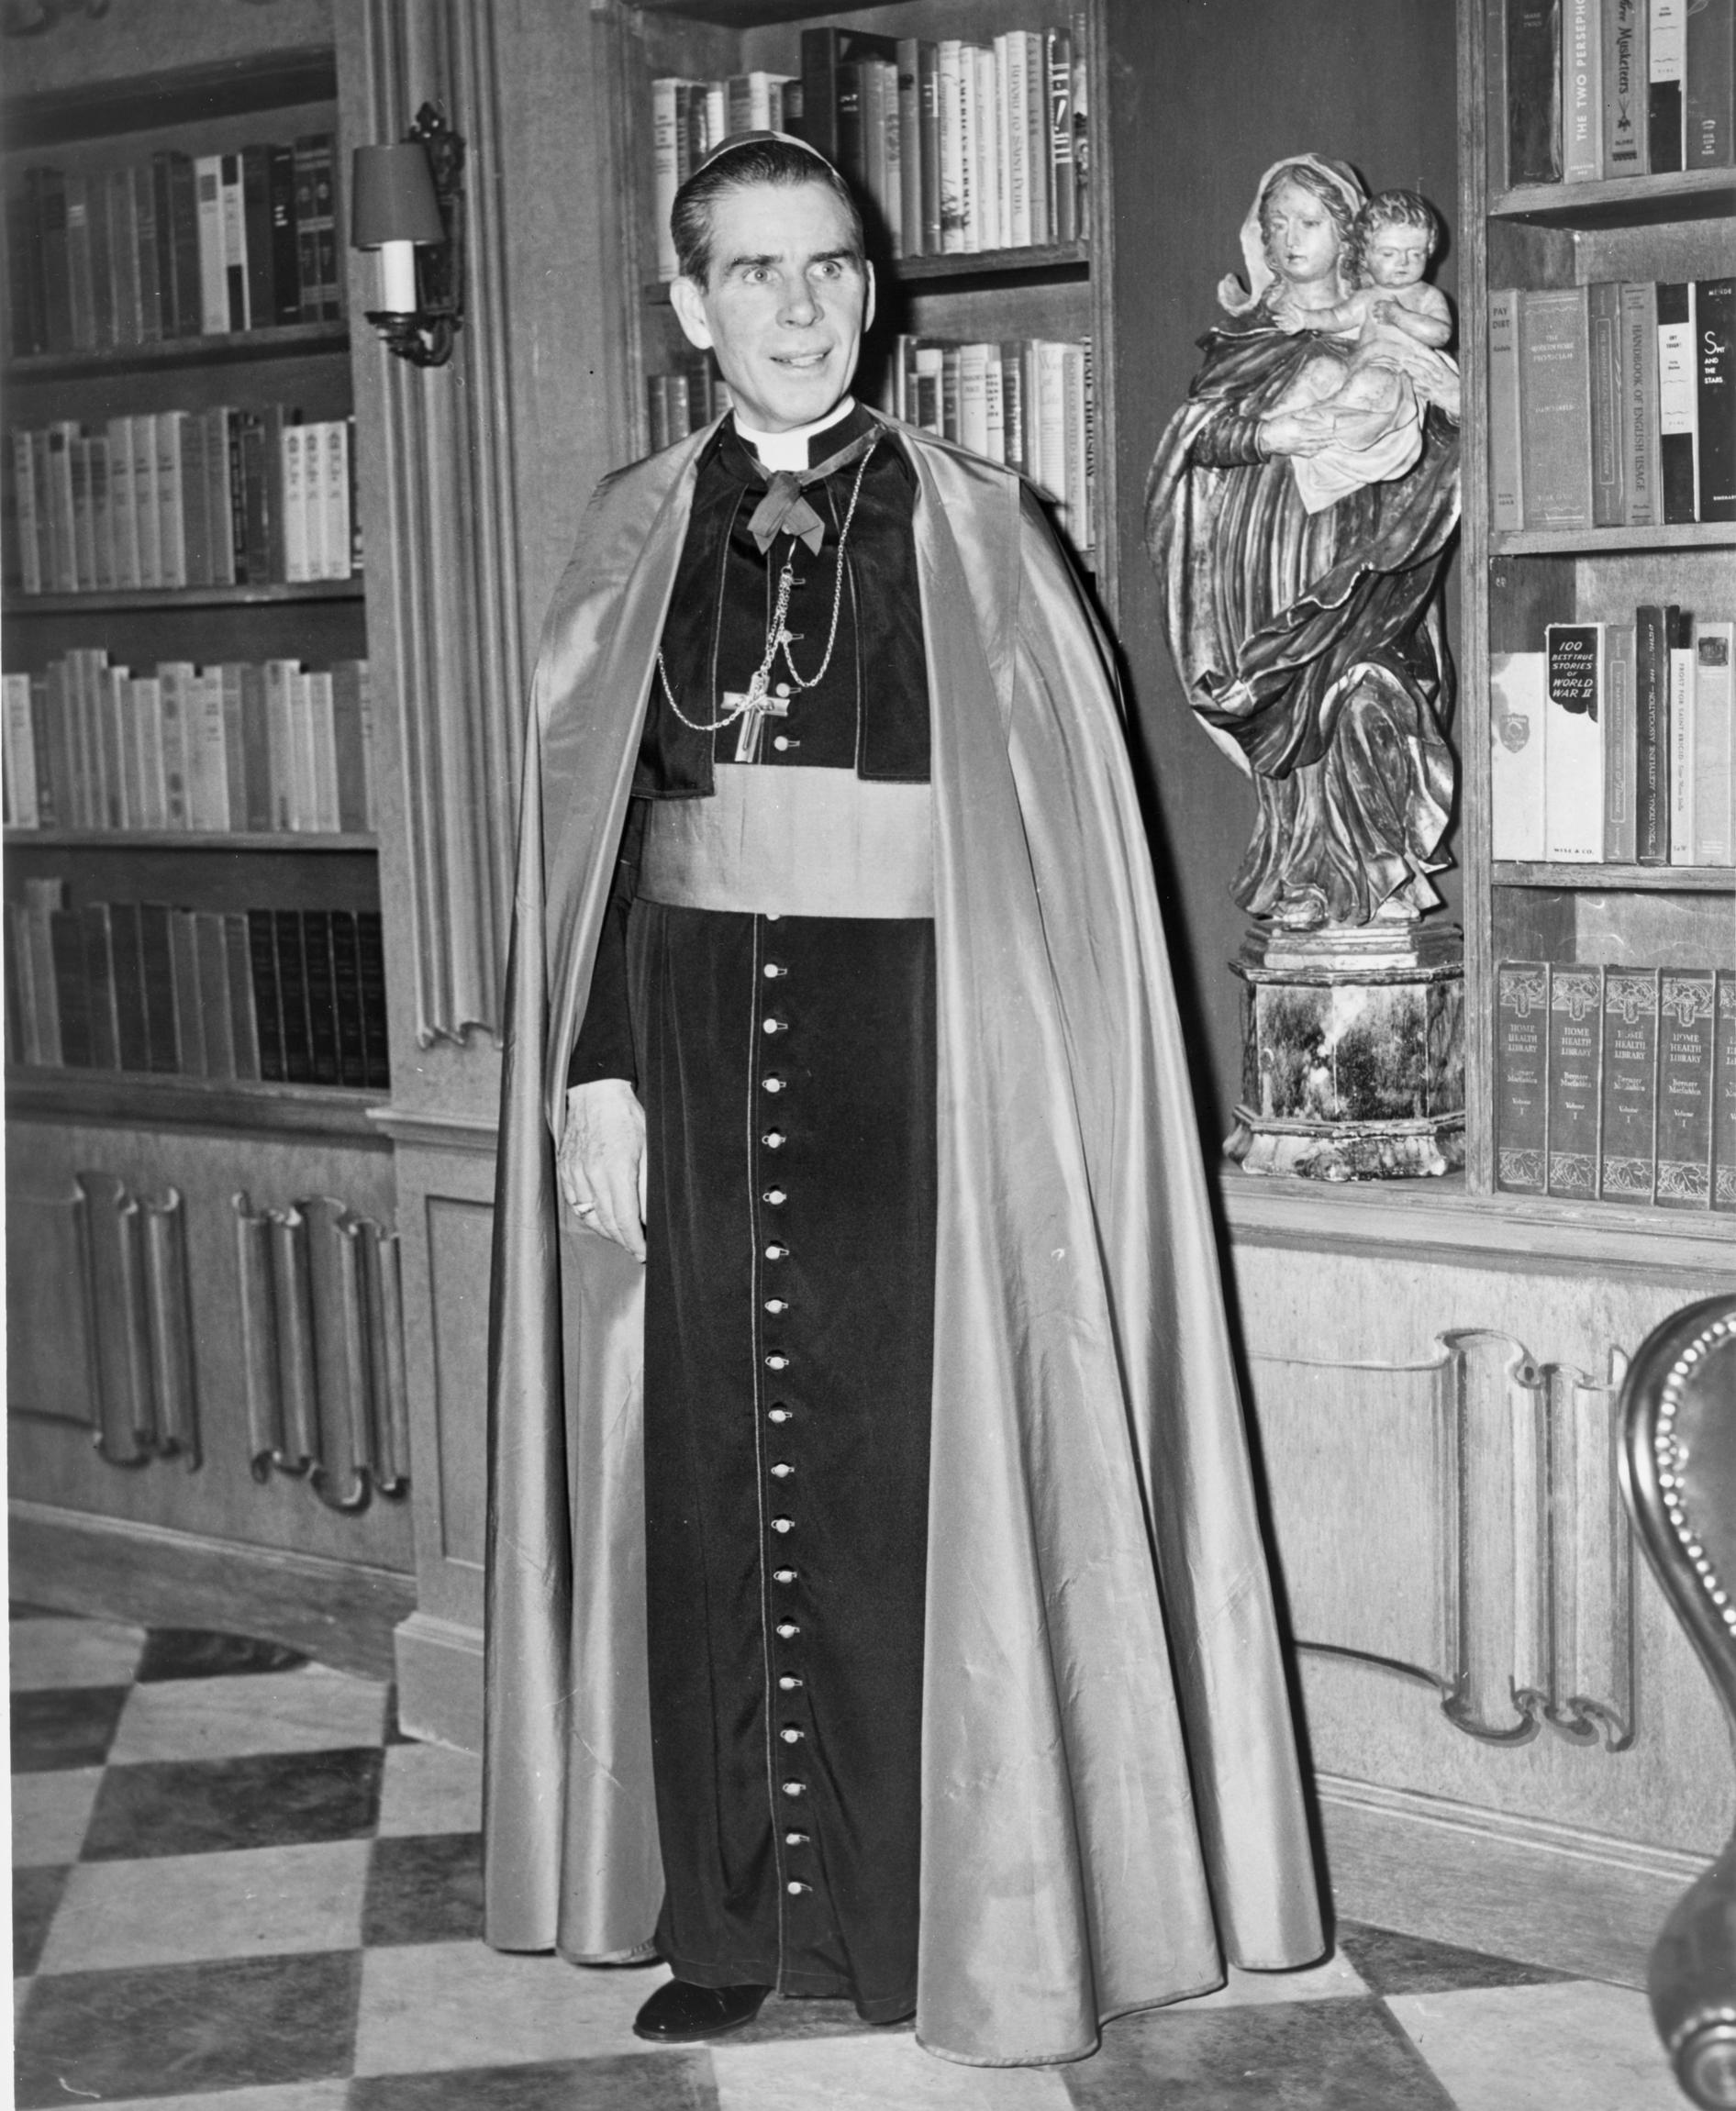 Archbishop Sheen on a set for one of his regular television programs